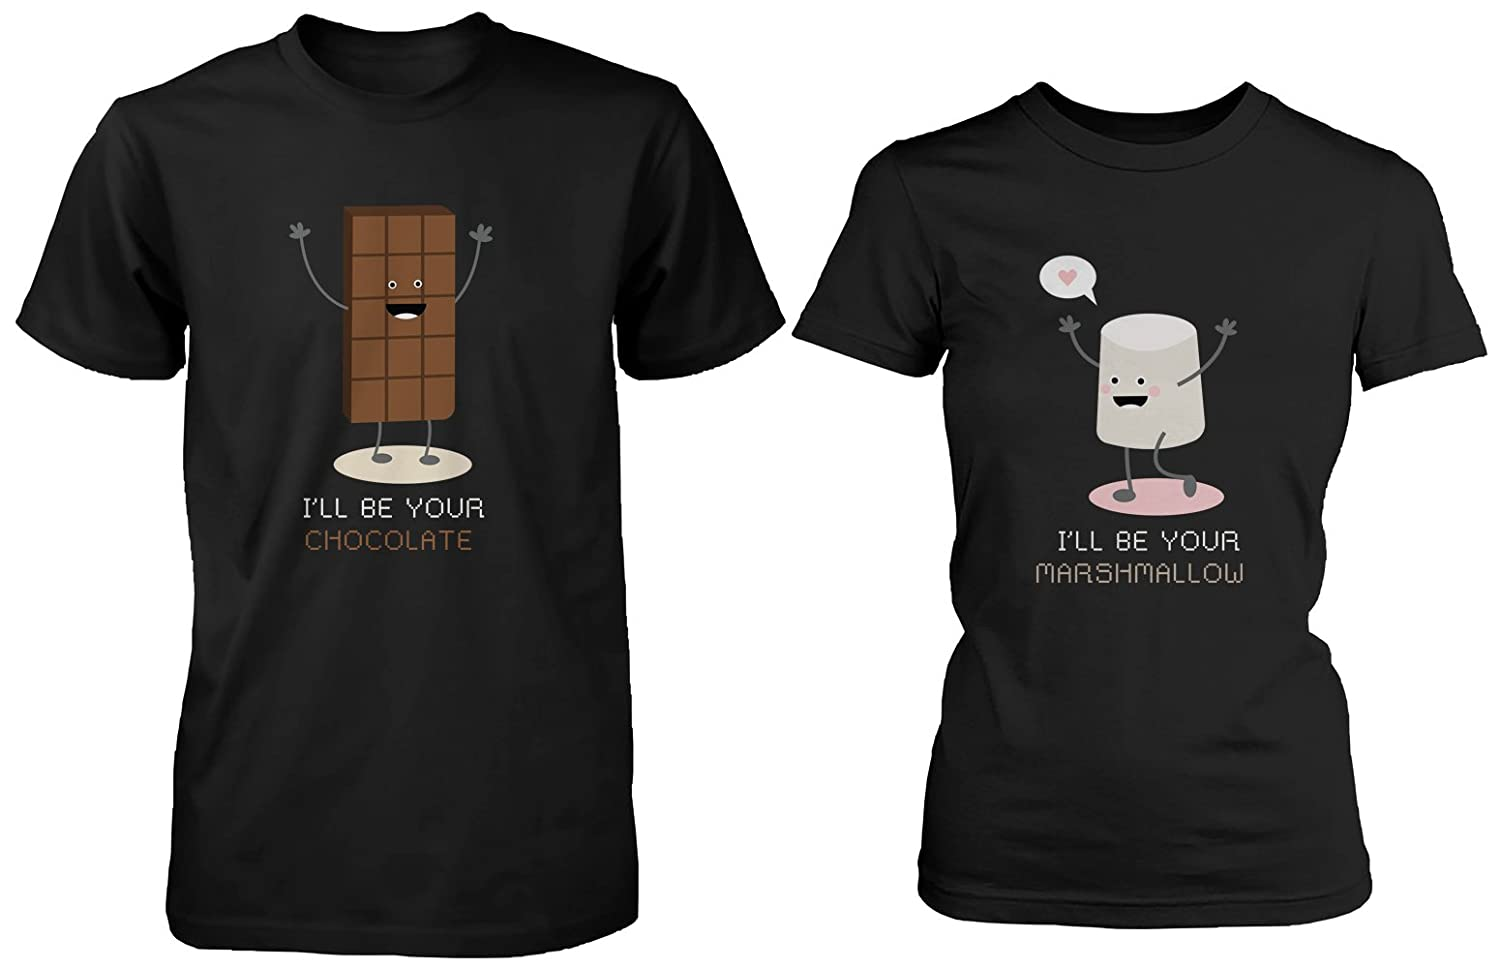 26dfd1e68e 100% Cotton Made in USA and Imported Cute Couple Shirts for Him & Her -  I\'ll Be Your Chocolate and Marshmallow Enzymed washed lightweight material